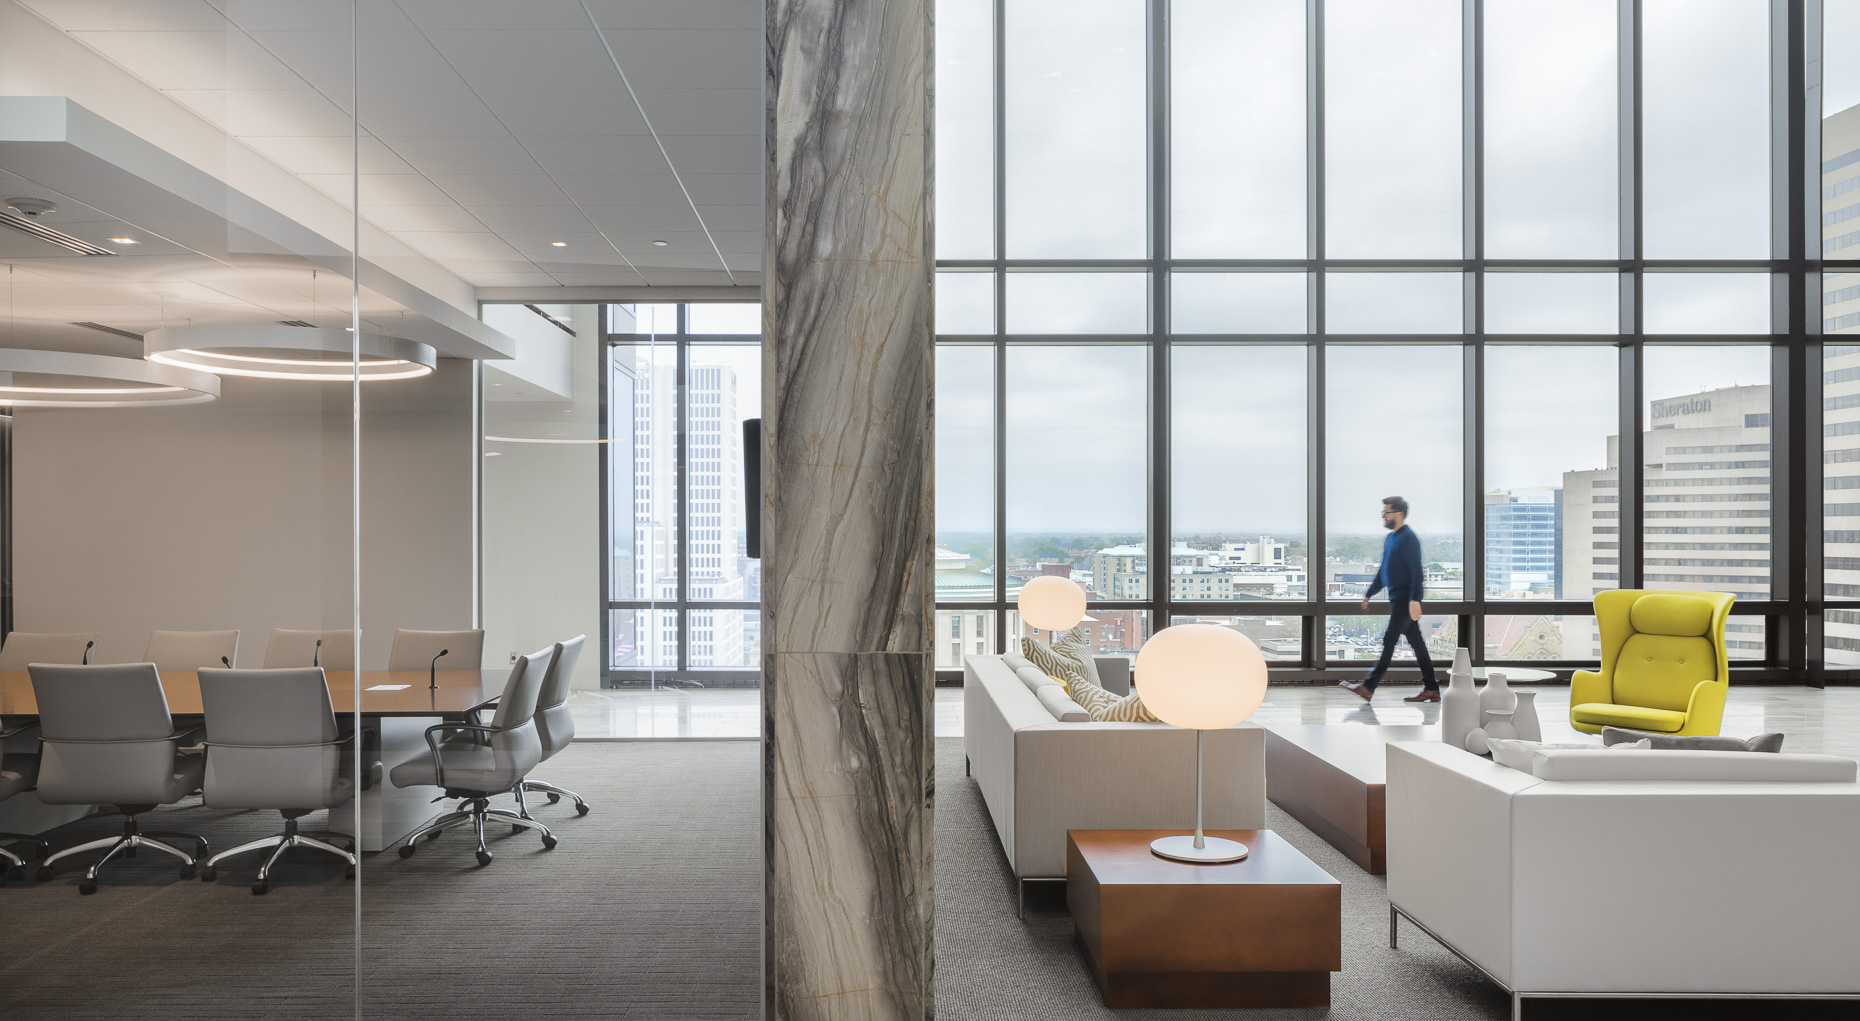 Calfee Columbus Office by VOCON photographed by Brad Feinknopf based in Columbus, Ohio